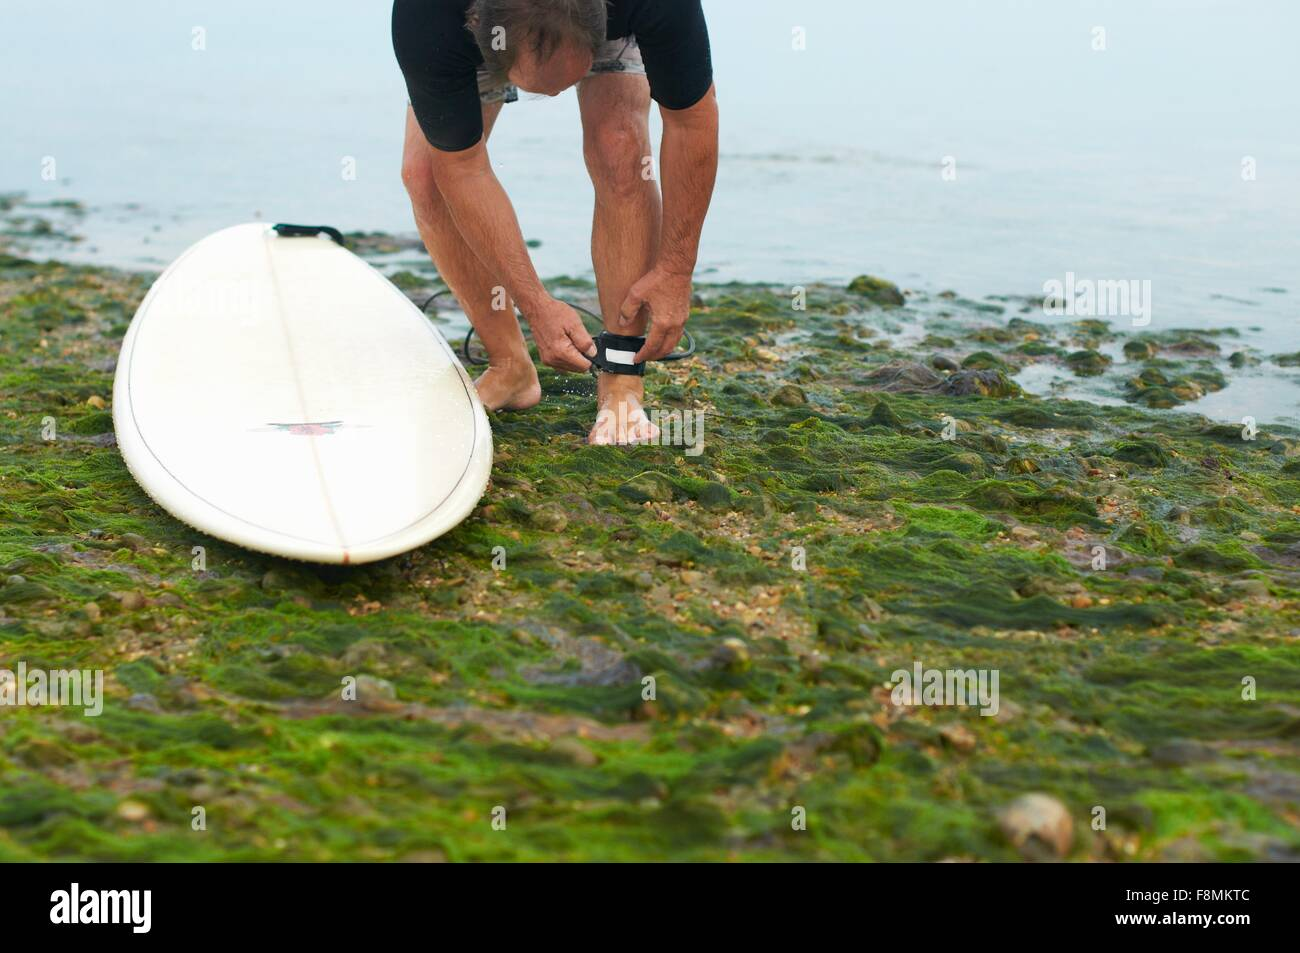 Surfer tying surfboard leash to ankle - Stock Image